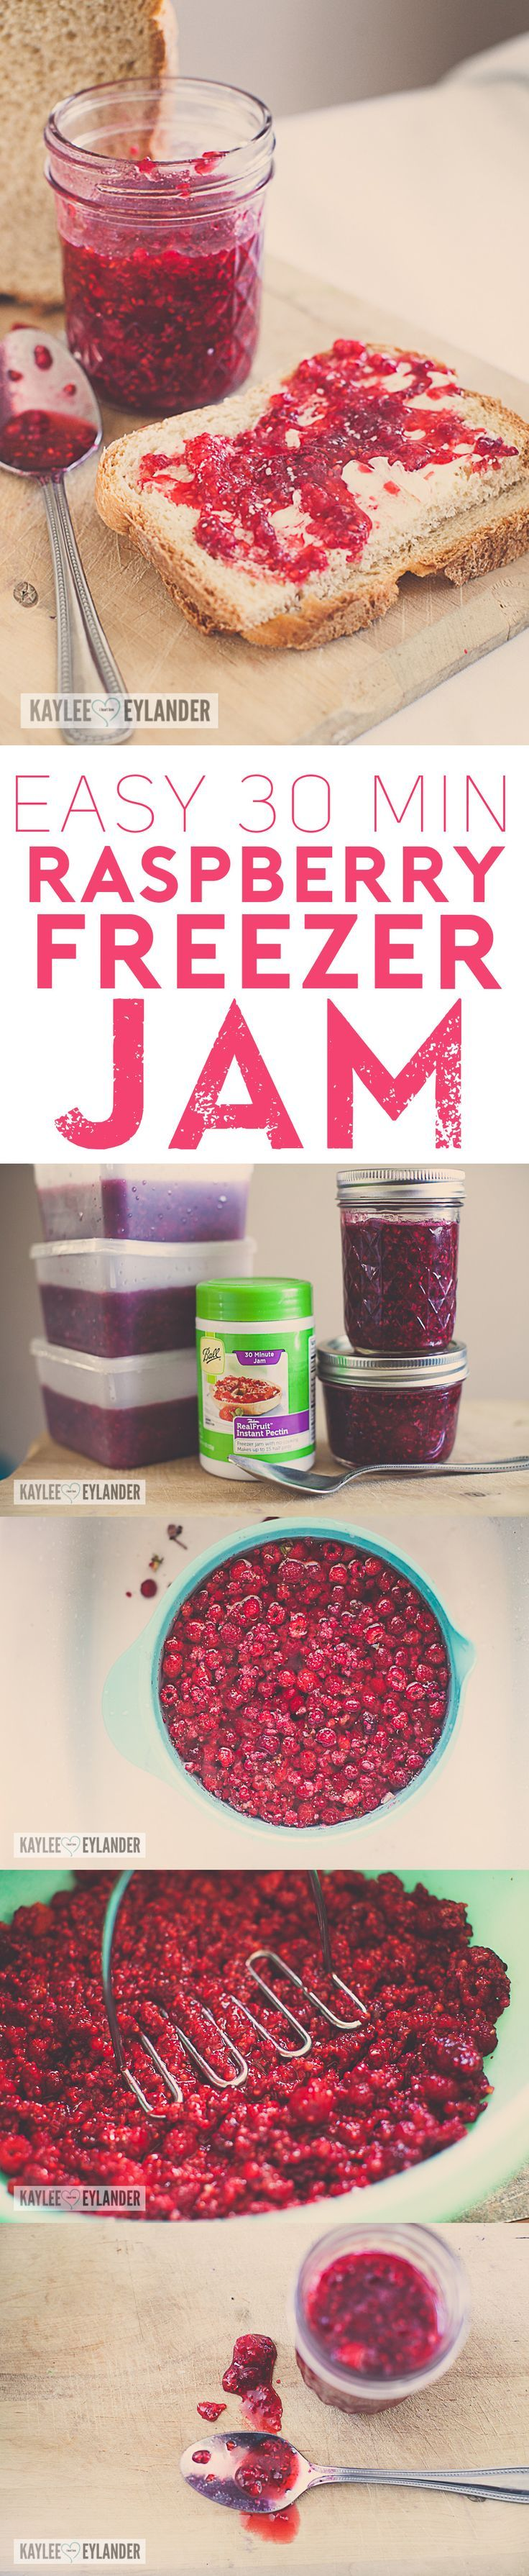 Rasberry Freezer Jam | Quick Freezer Jam | Easy raspberry jam